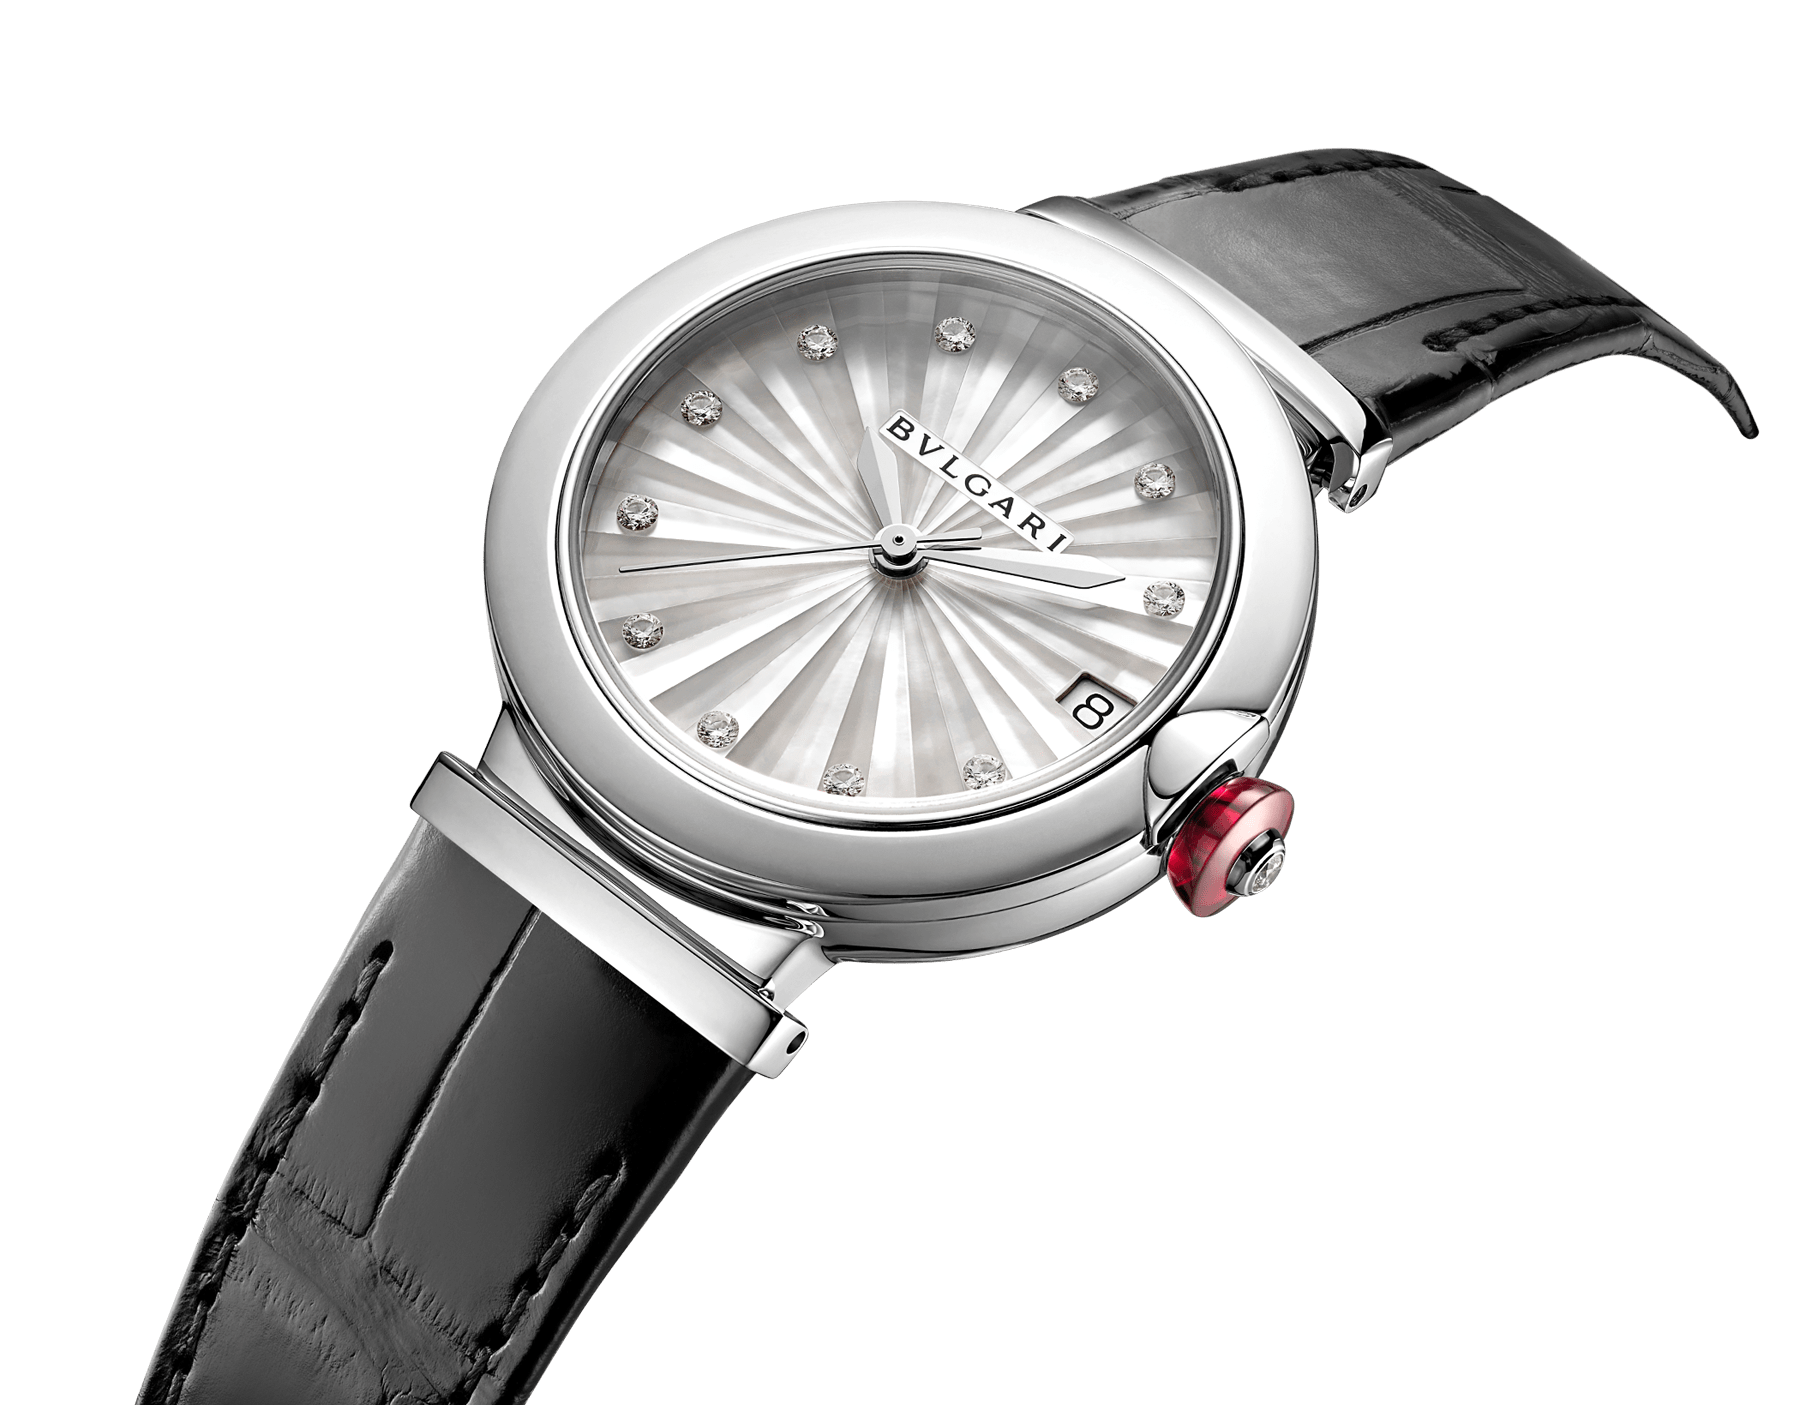 LVCEA watch with stainless steel case, white mother-of-pearl Intarsio marquetry dial, diamond indexes and black alligator bracelet 103478 image 2